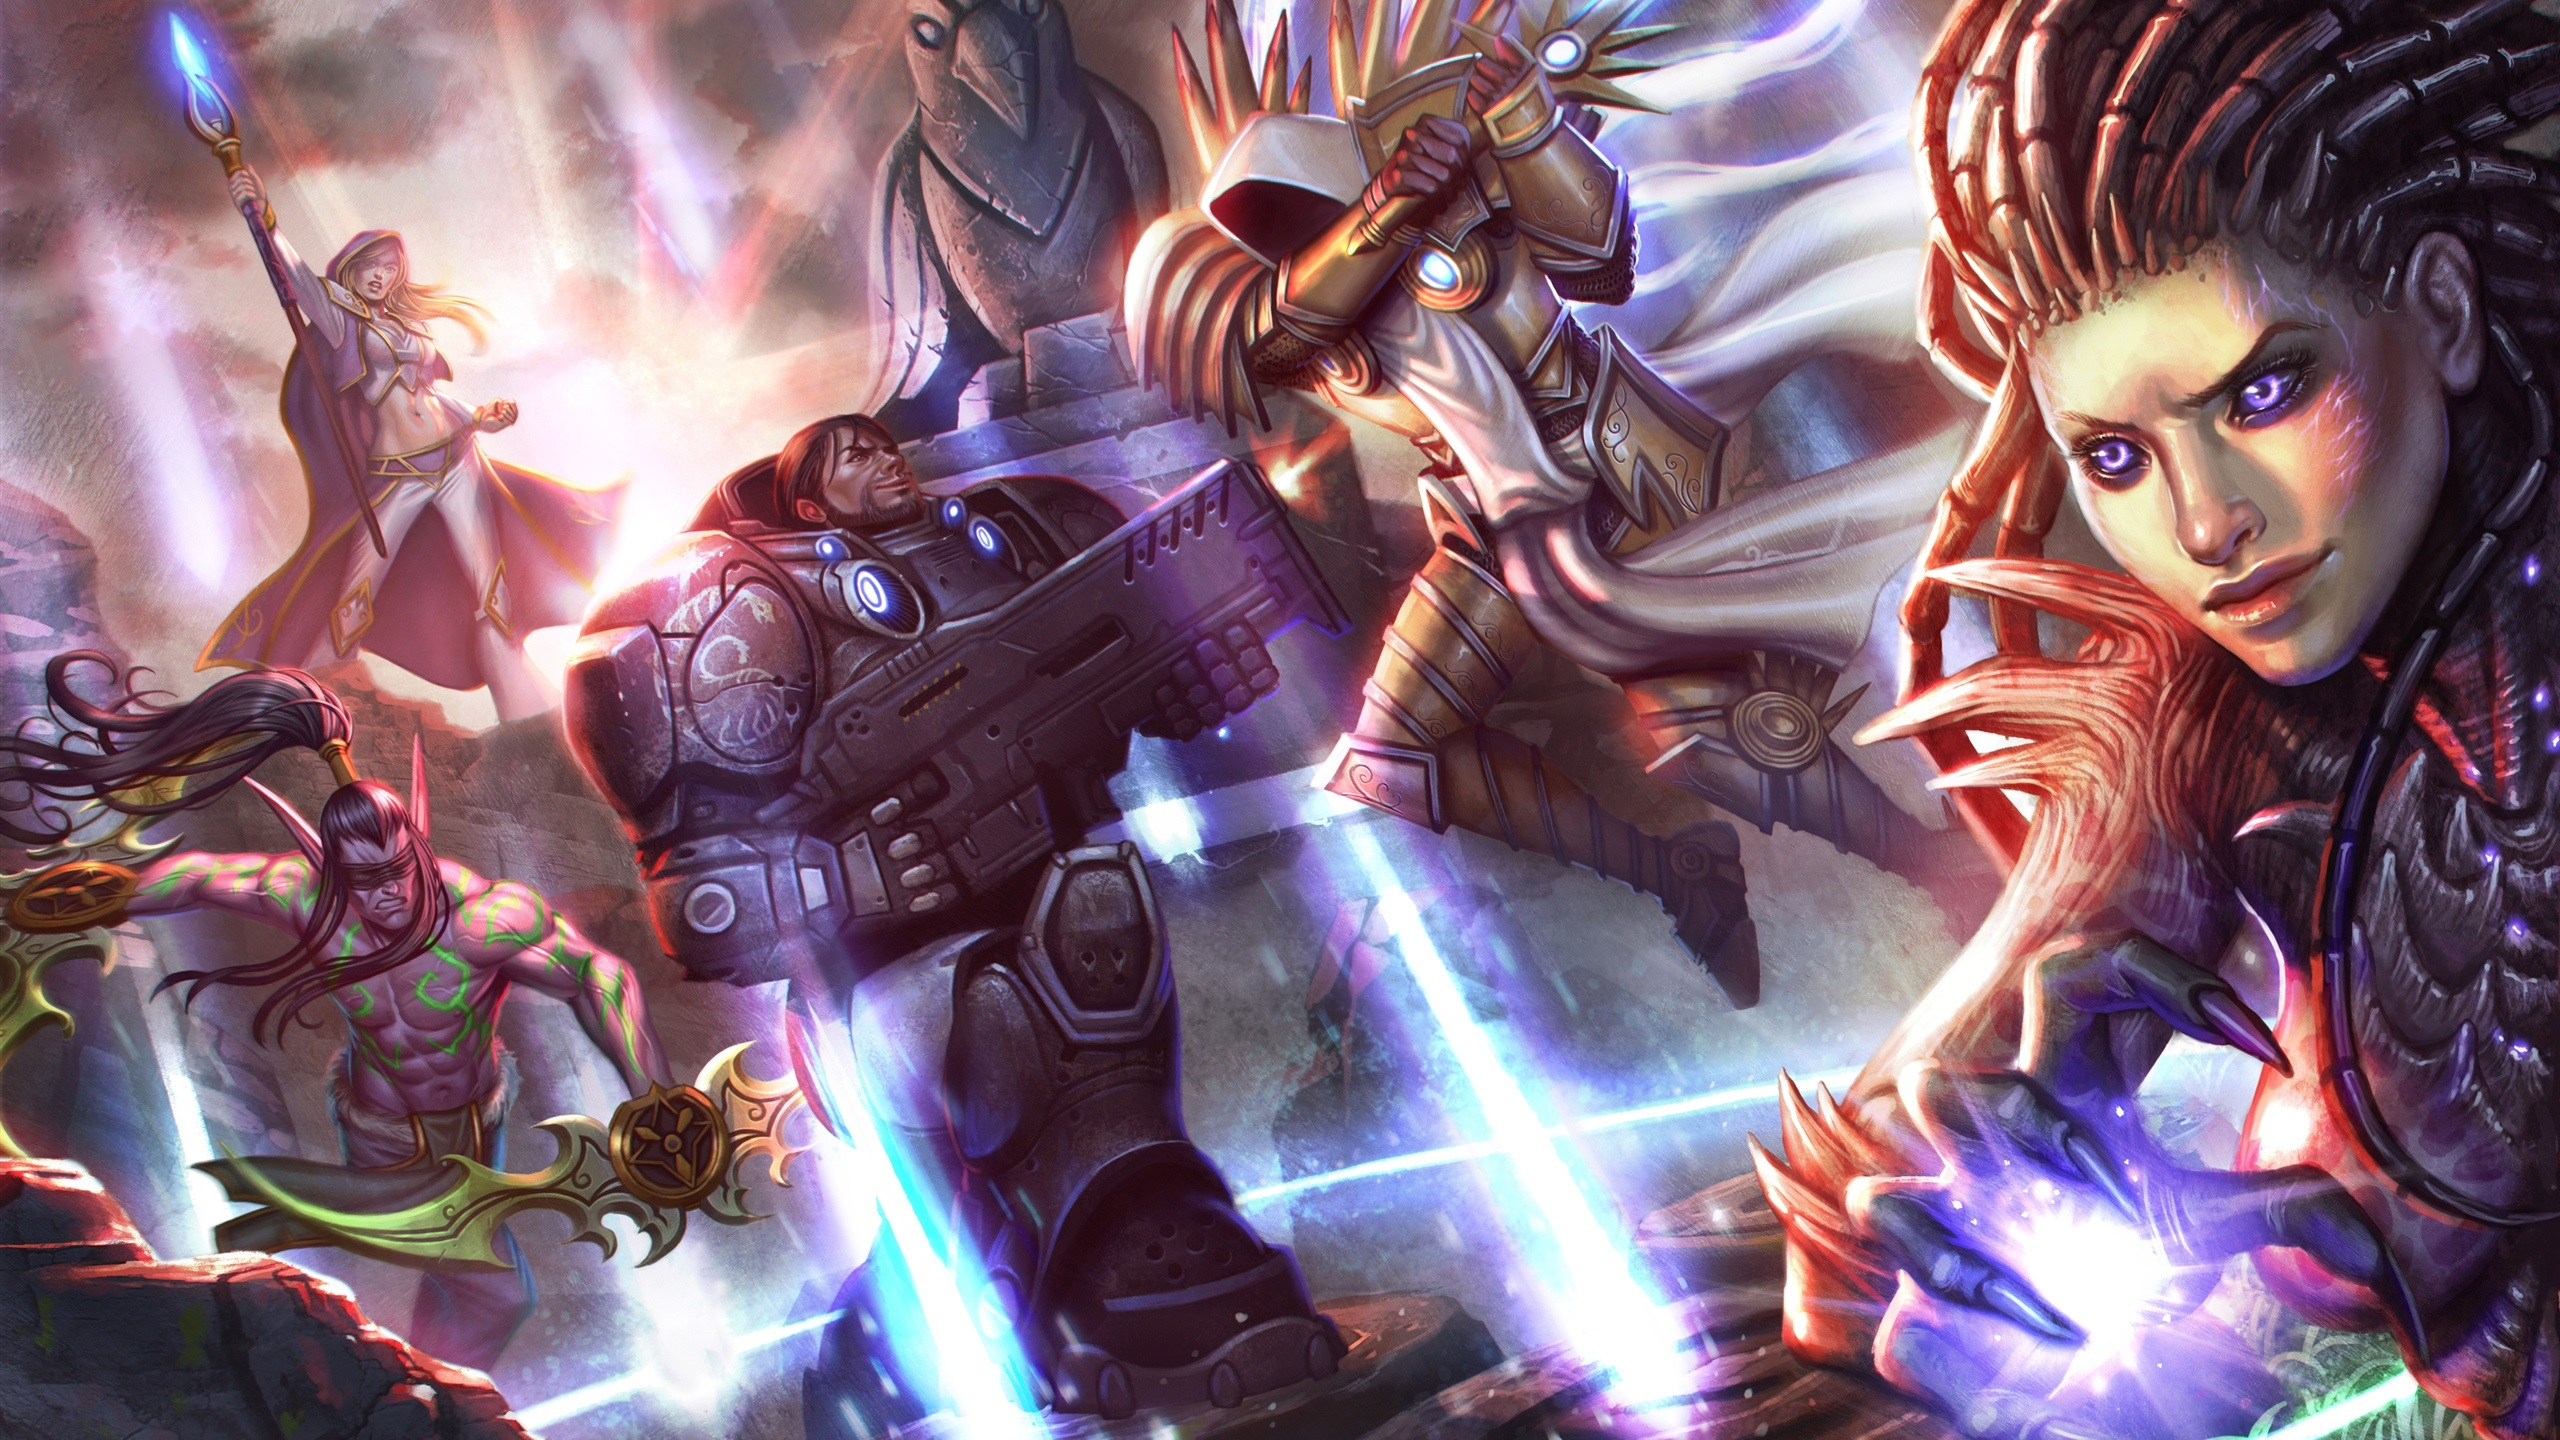 Wallpaper Heroes Of The Storm 2560x1440 QHD Picture Image